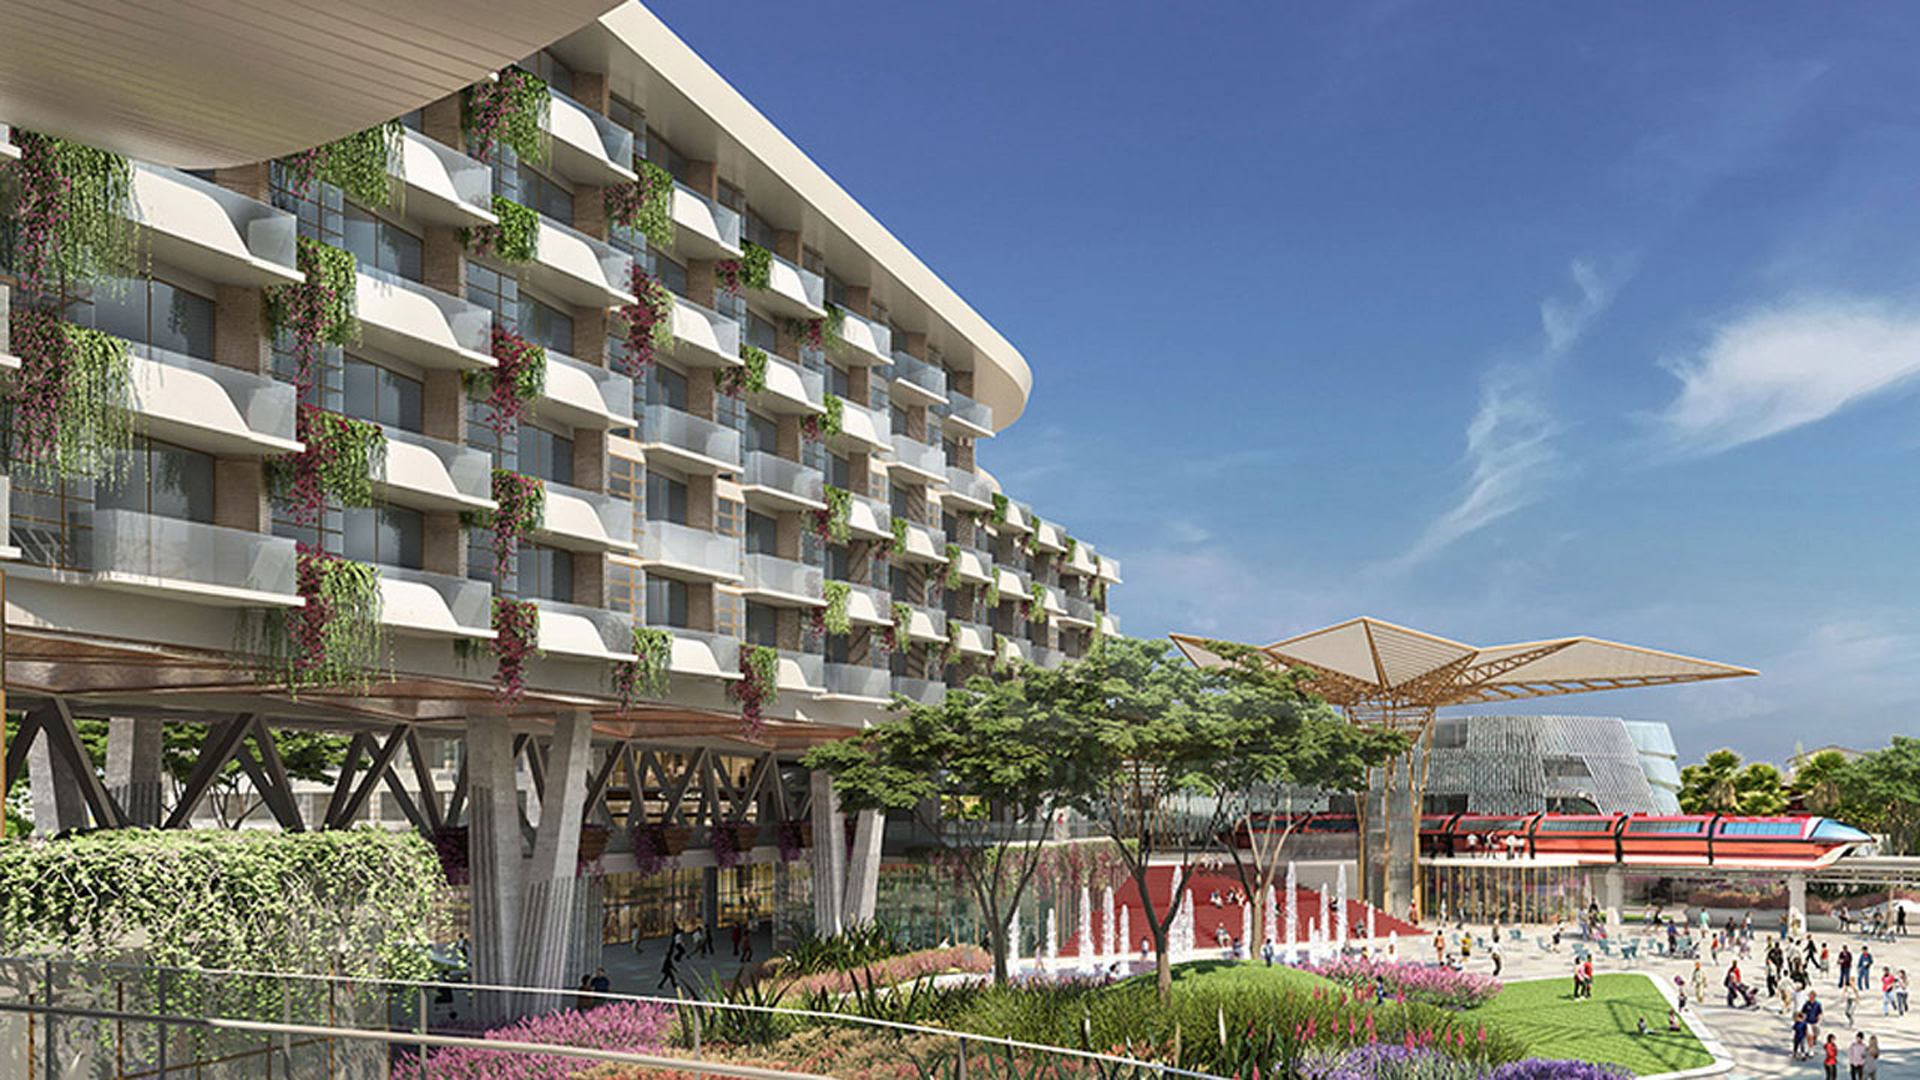 The new hotel was set to open at the west end of the Downtown Disney District in 2021. (Credit: Disneyland Resort)